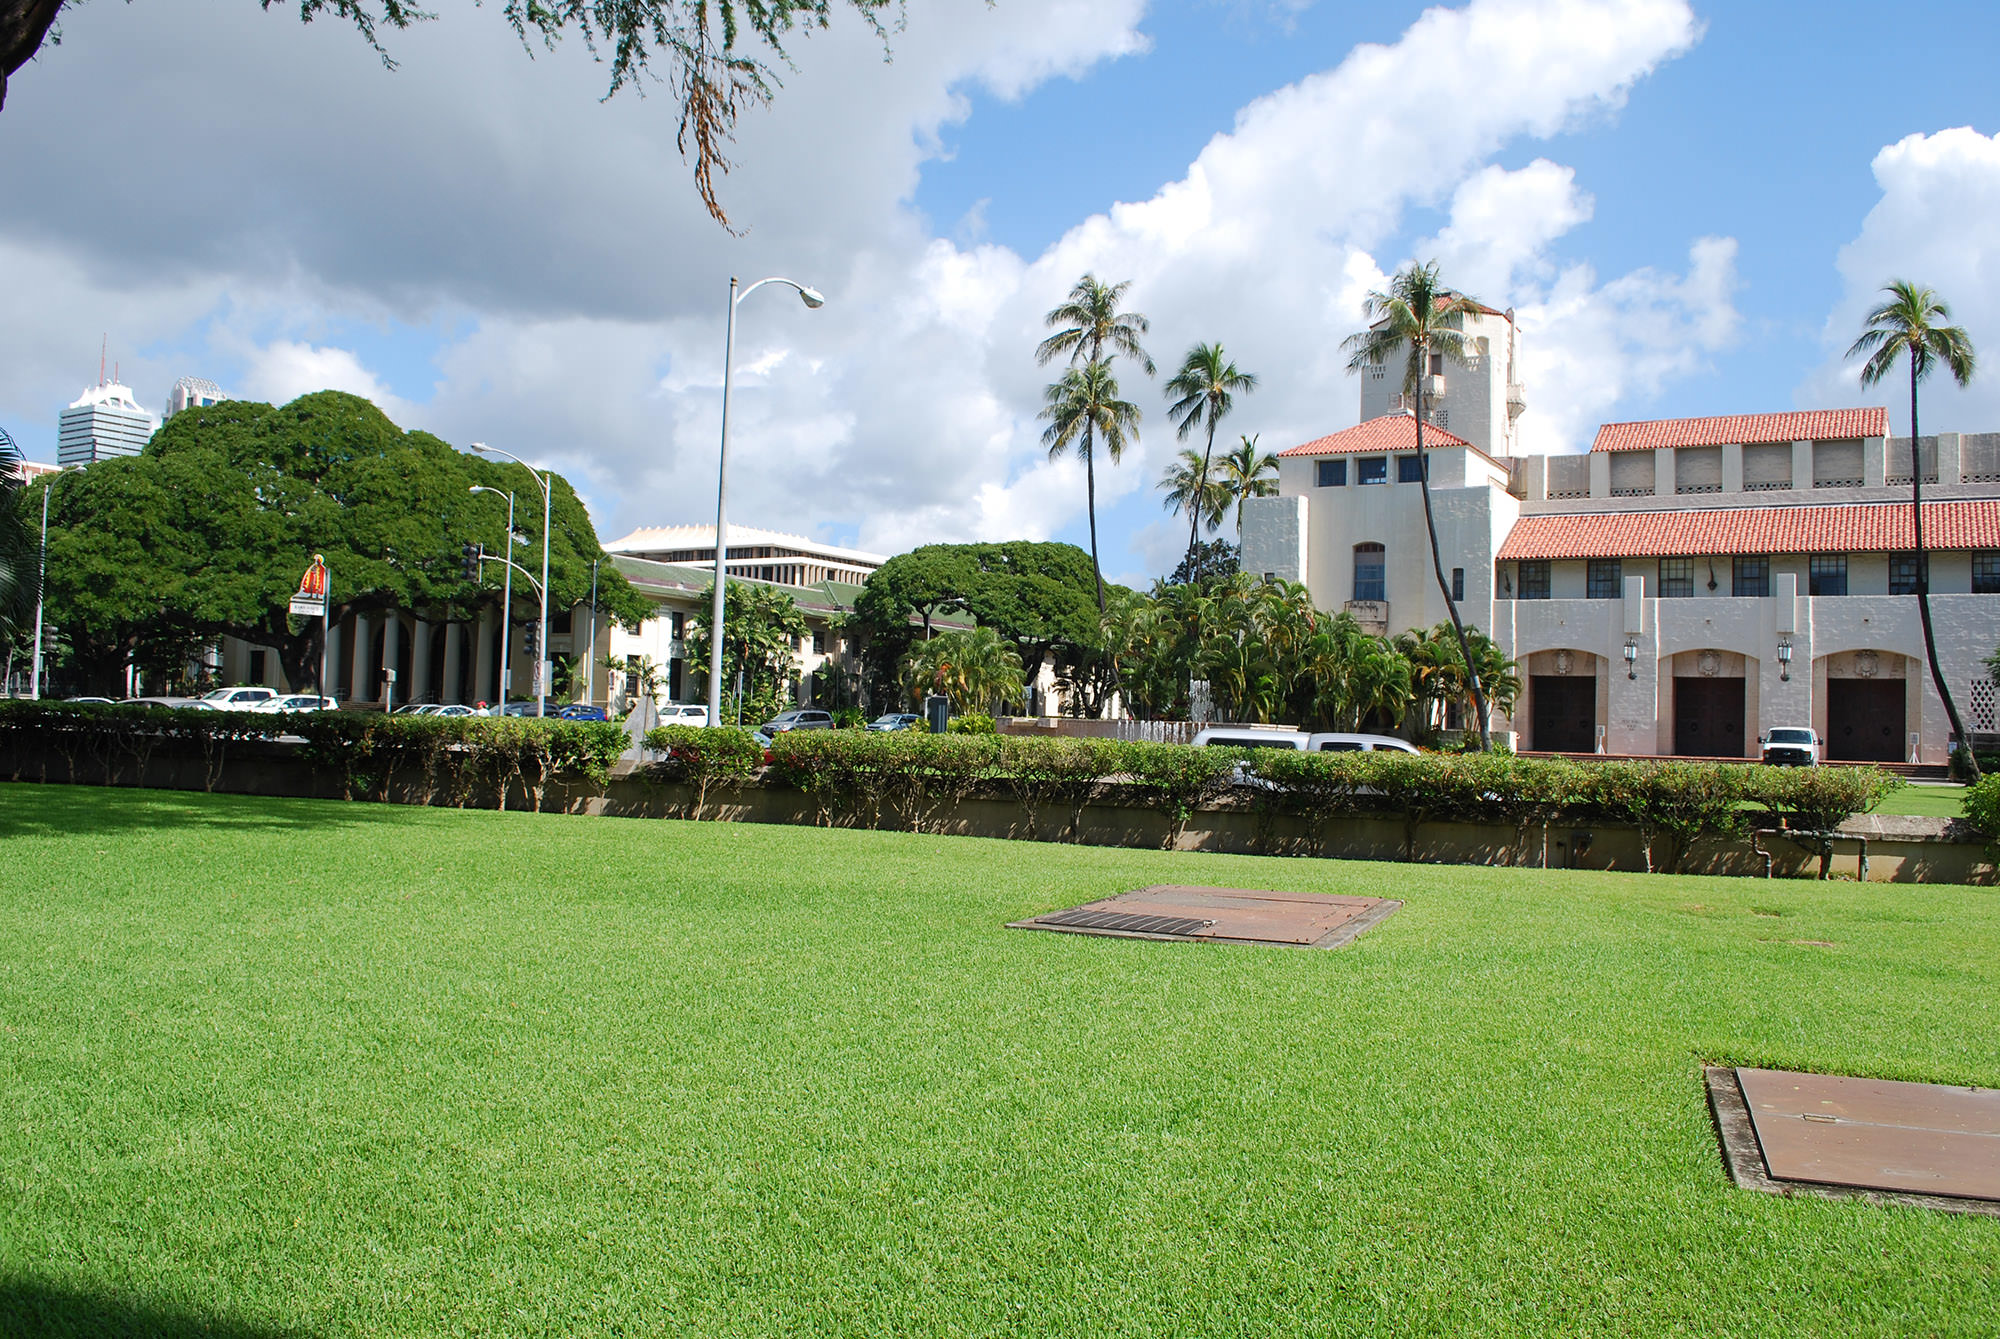 Fig. 16 Hawai'i State Capital, visible in middle distance from main steps of Kawaiahaʻo Church, with Hawai'i State Public Library seen in front of the State Capital, February 2014. Photo: ©Sally Promey